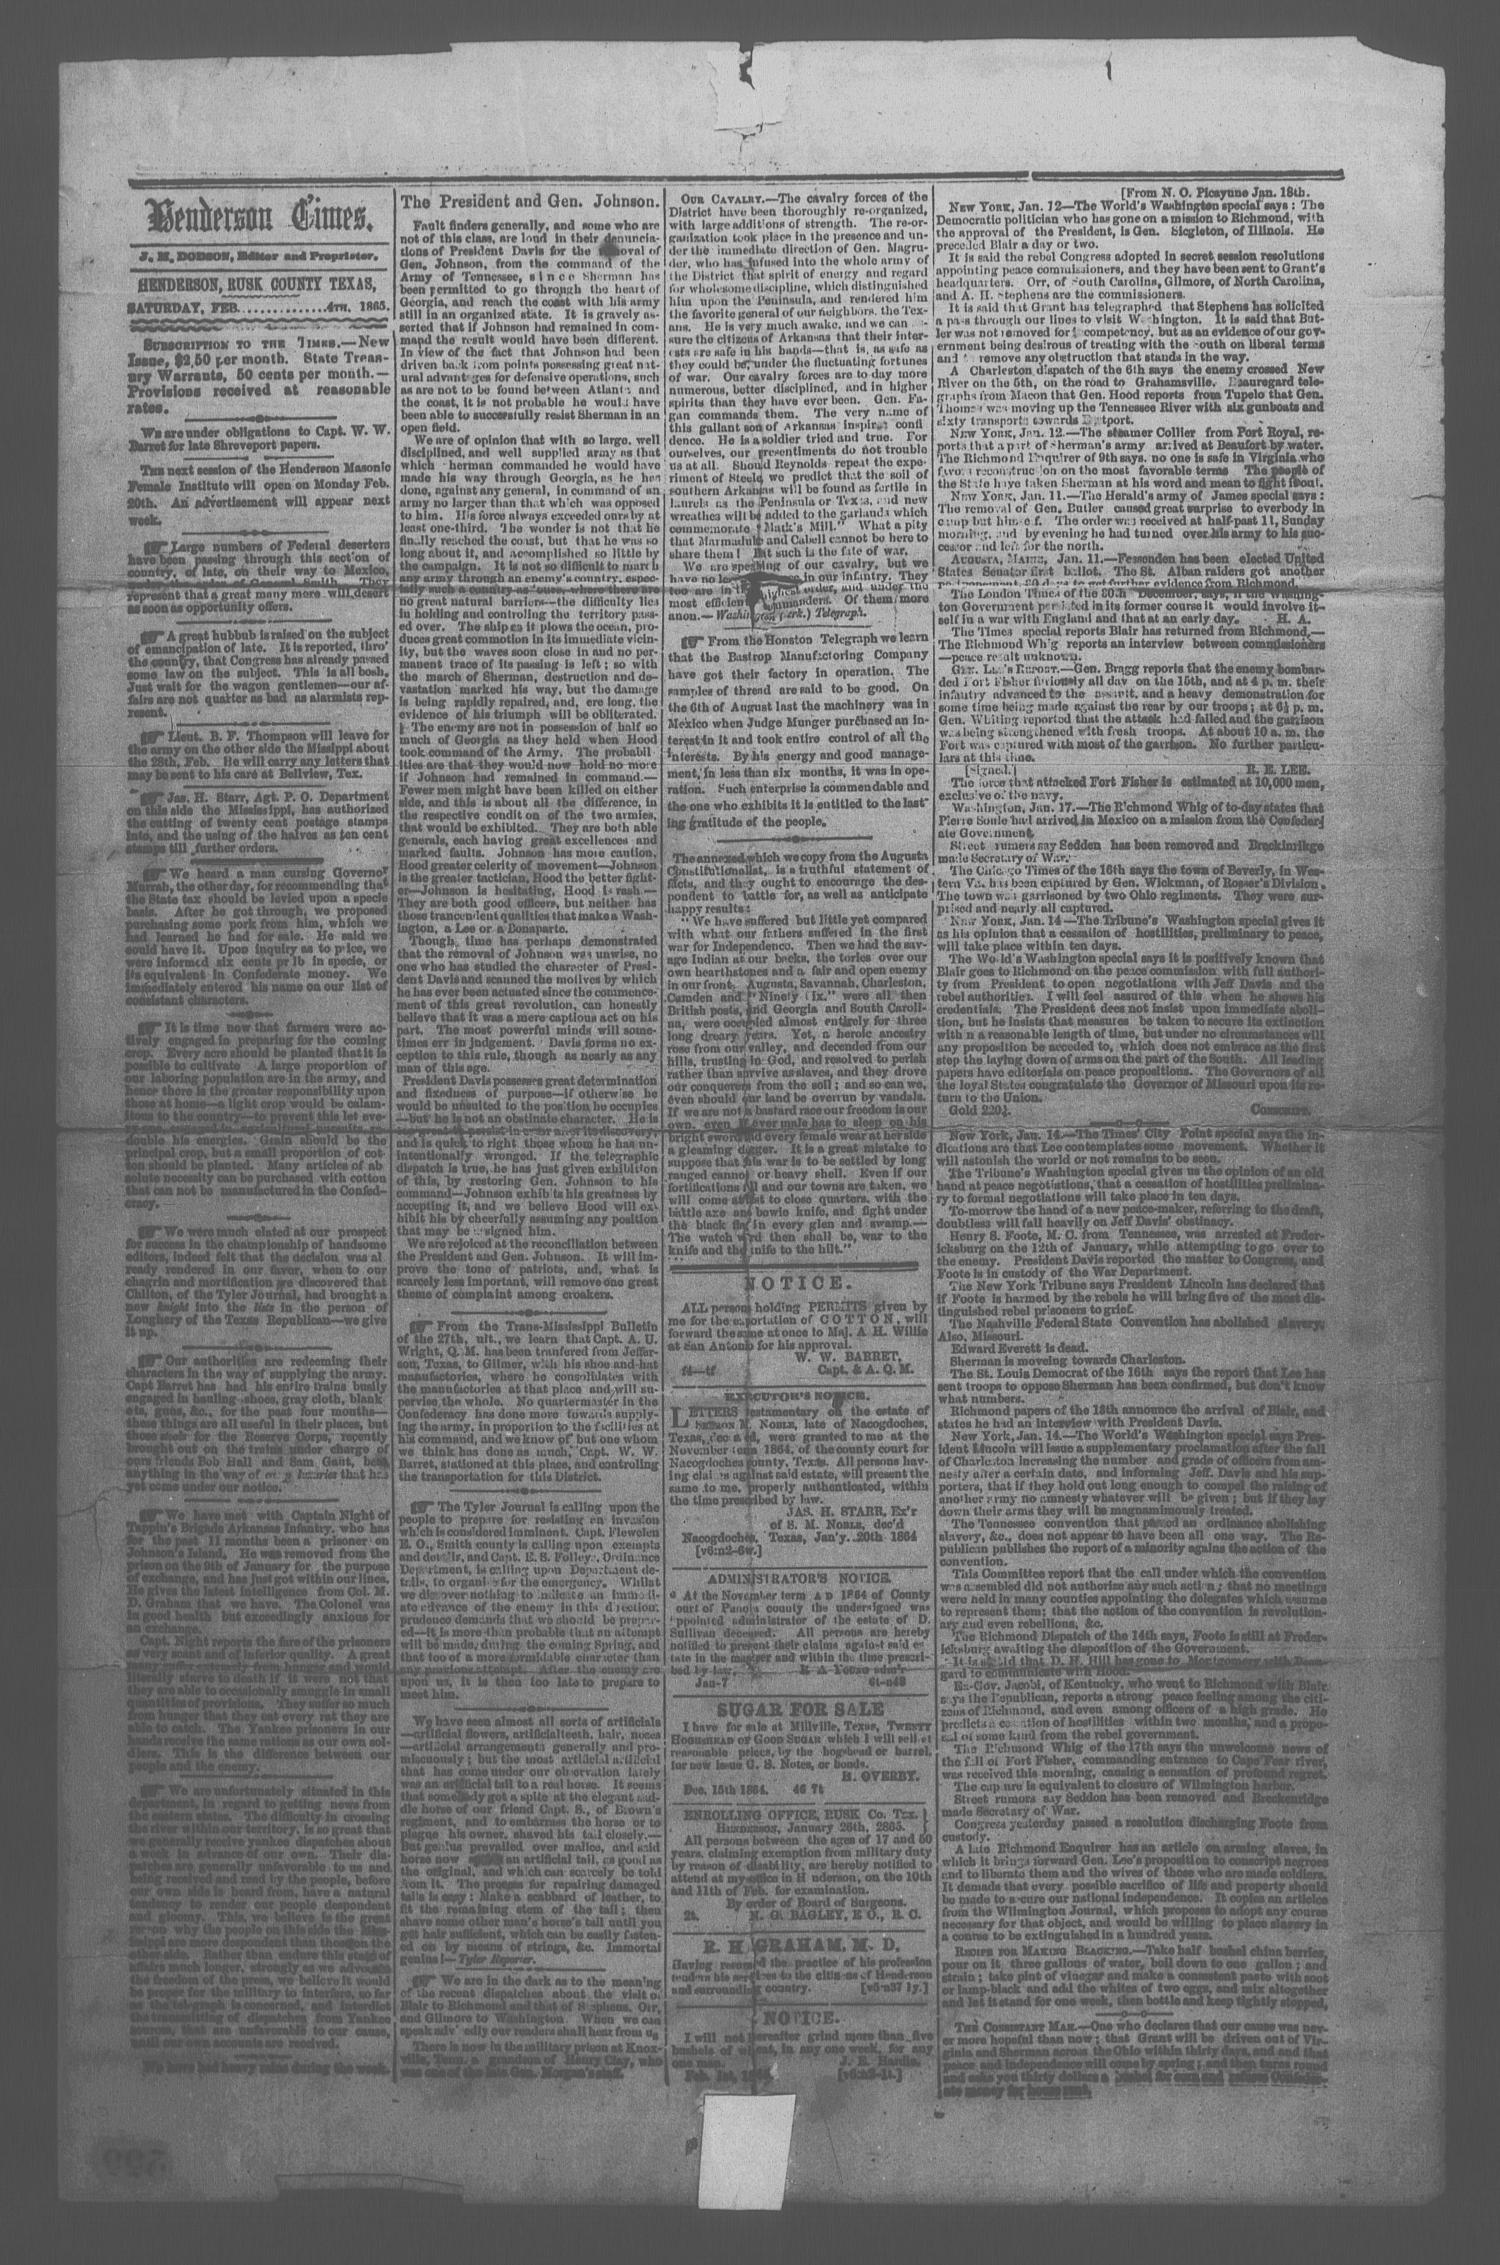 Henderson Times.  (Henderson, Tex.), Vol. 6, No. 2, Ed. 1 Saturday, February 4, 1865                                                                                                      [Sequence #]: 1 of 3